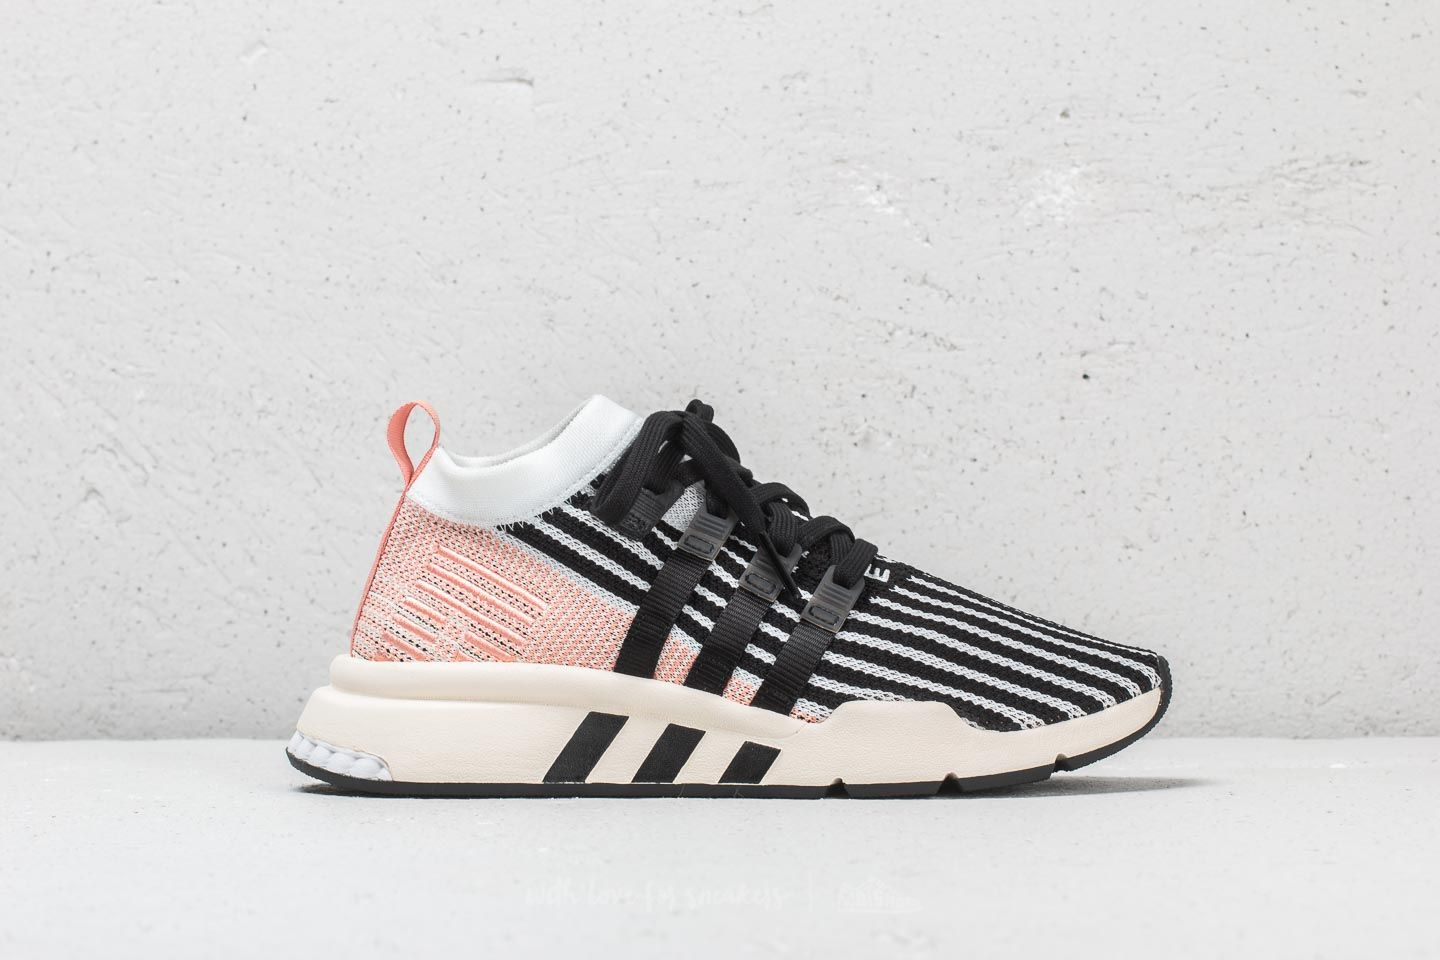 outlet store adc72 f9da9 Adidas EQT Support Mid ADV PK Cloud White Core Black Trace Pink at a